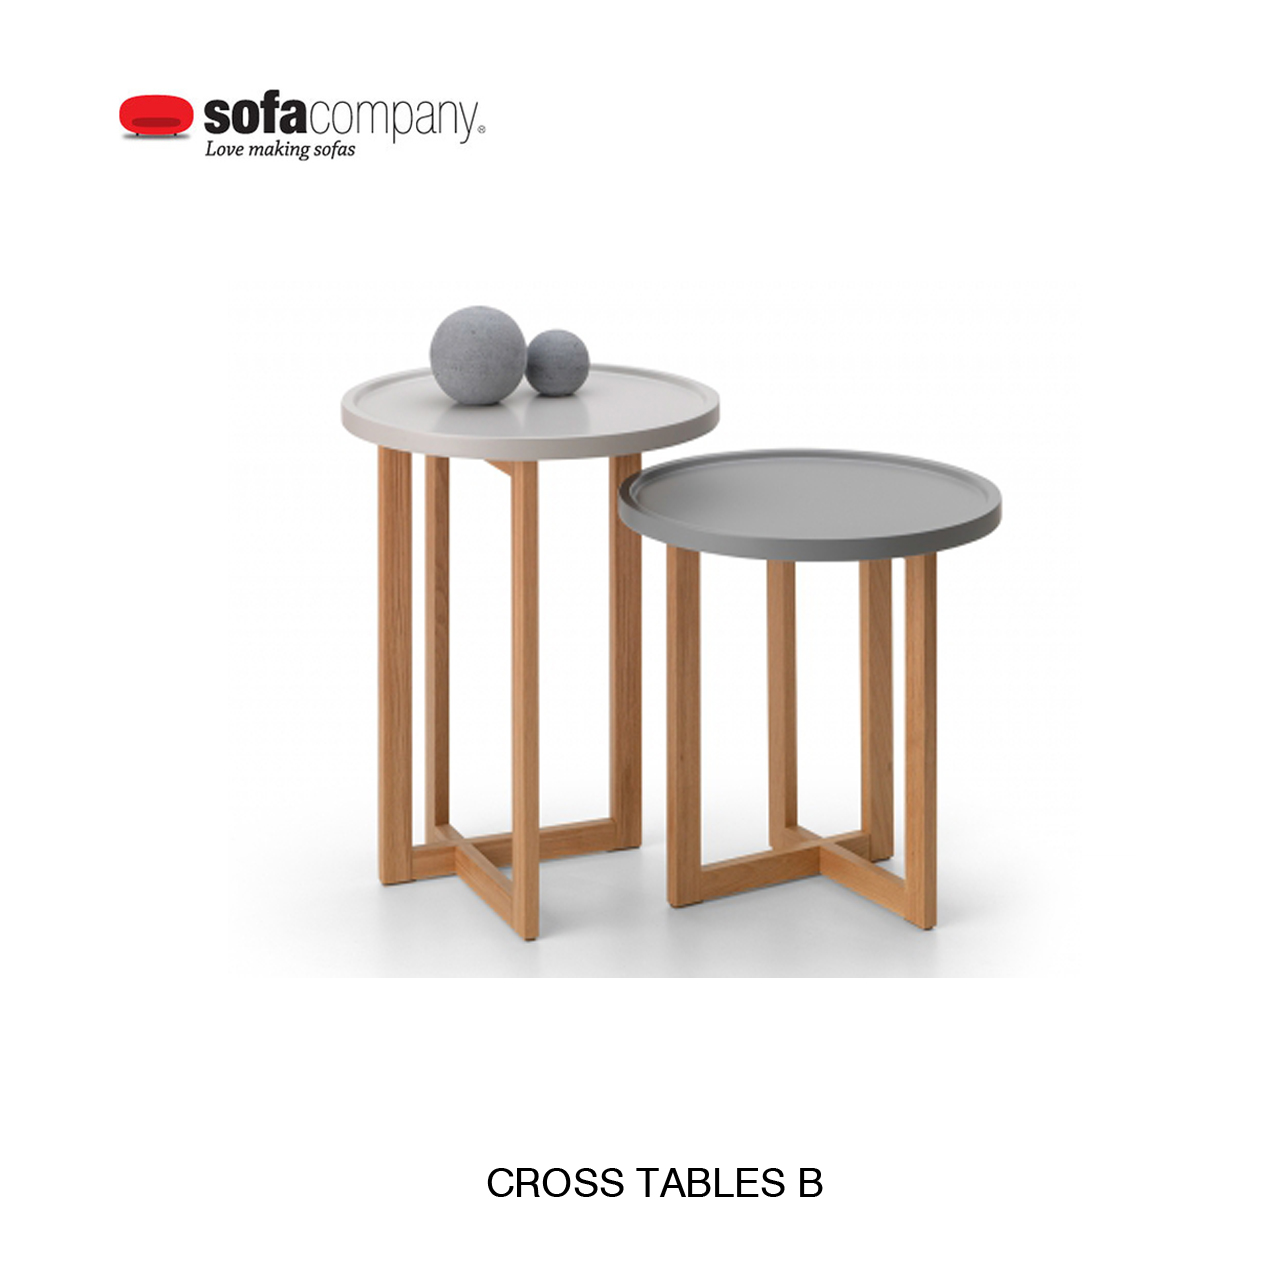 02 ctoss tables b s